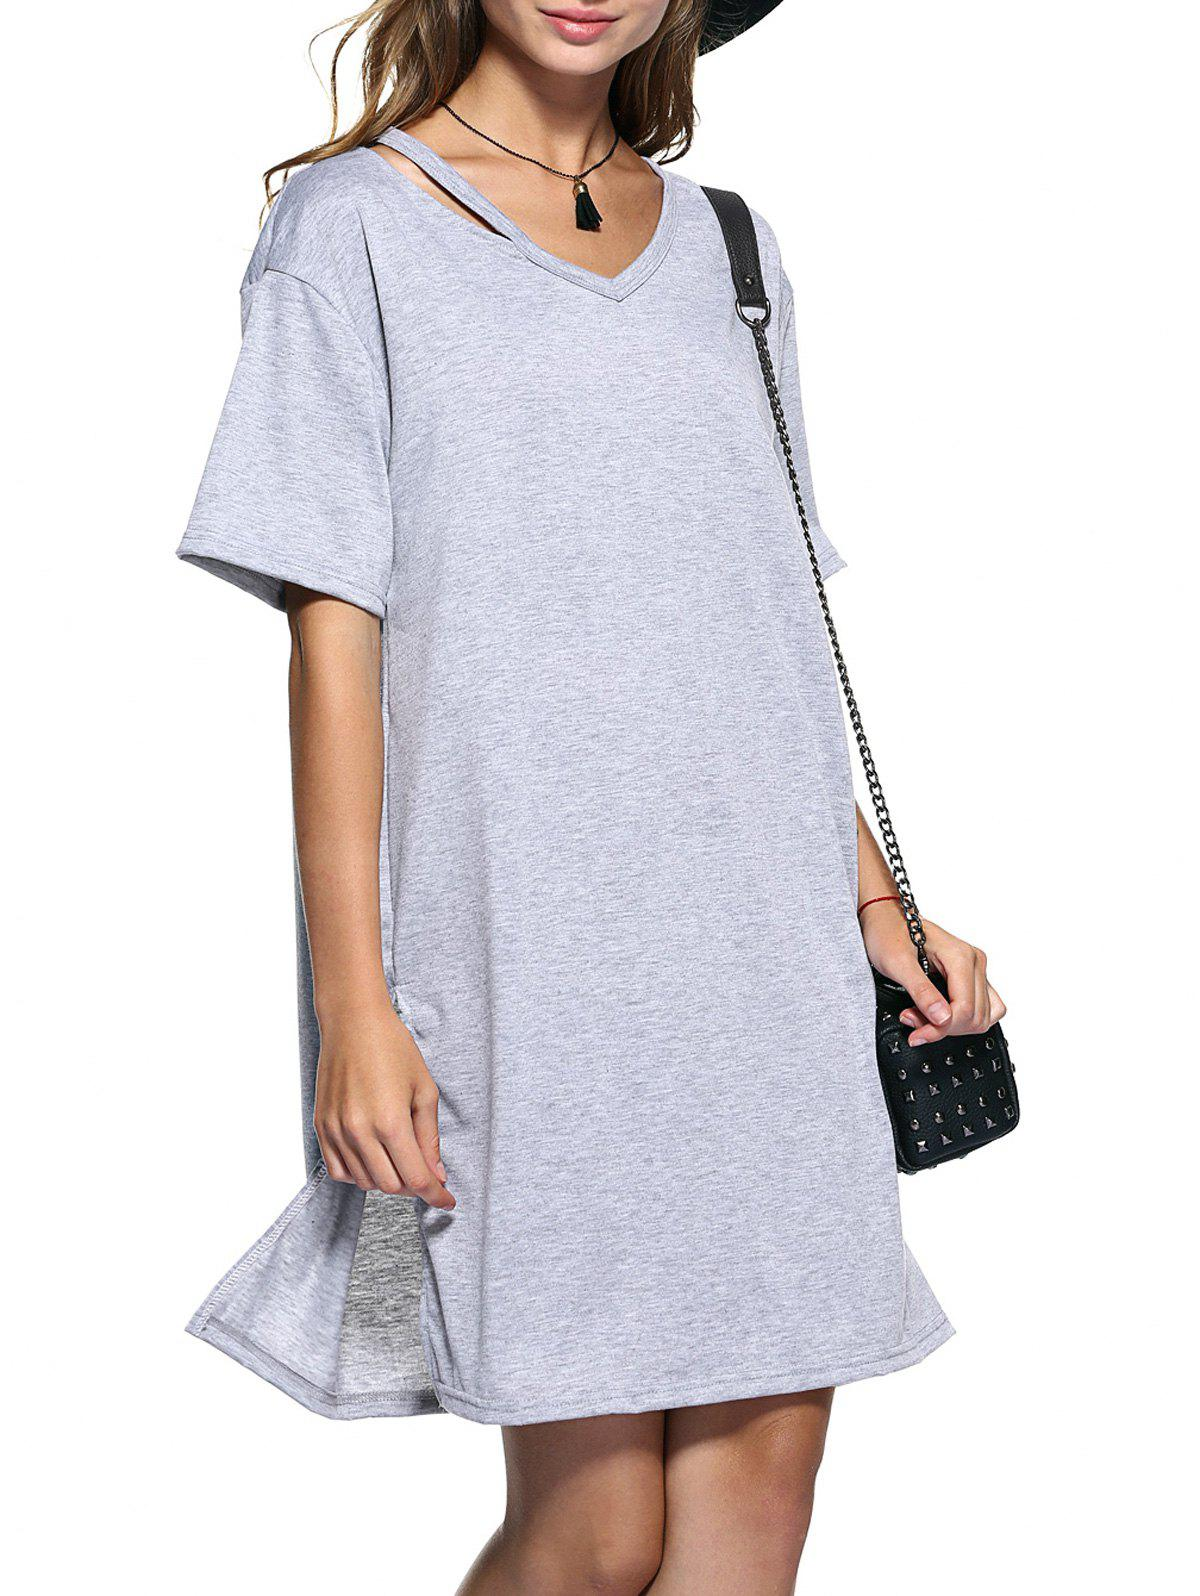 Cut Out Slit Pure Color Boyfriend Tee - GRAY M